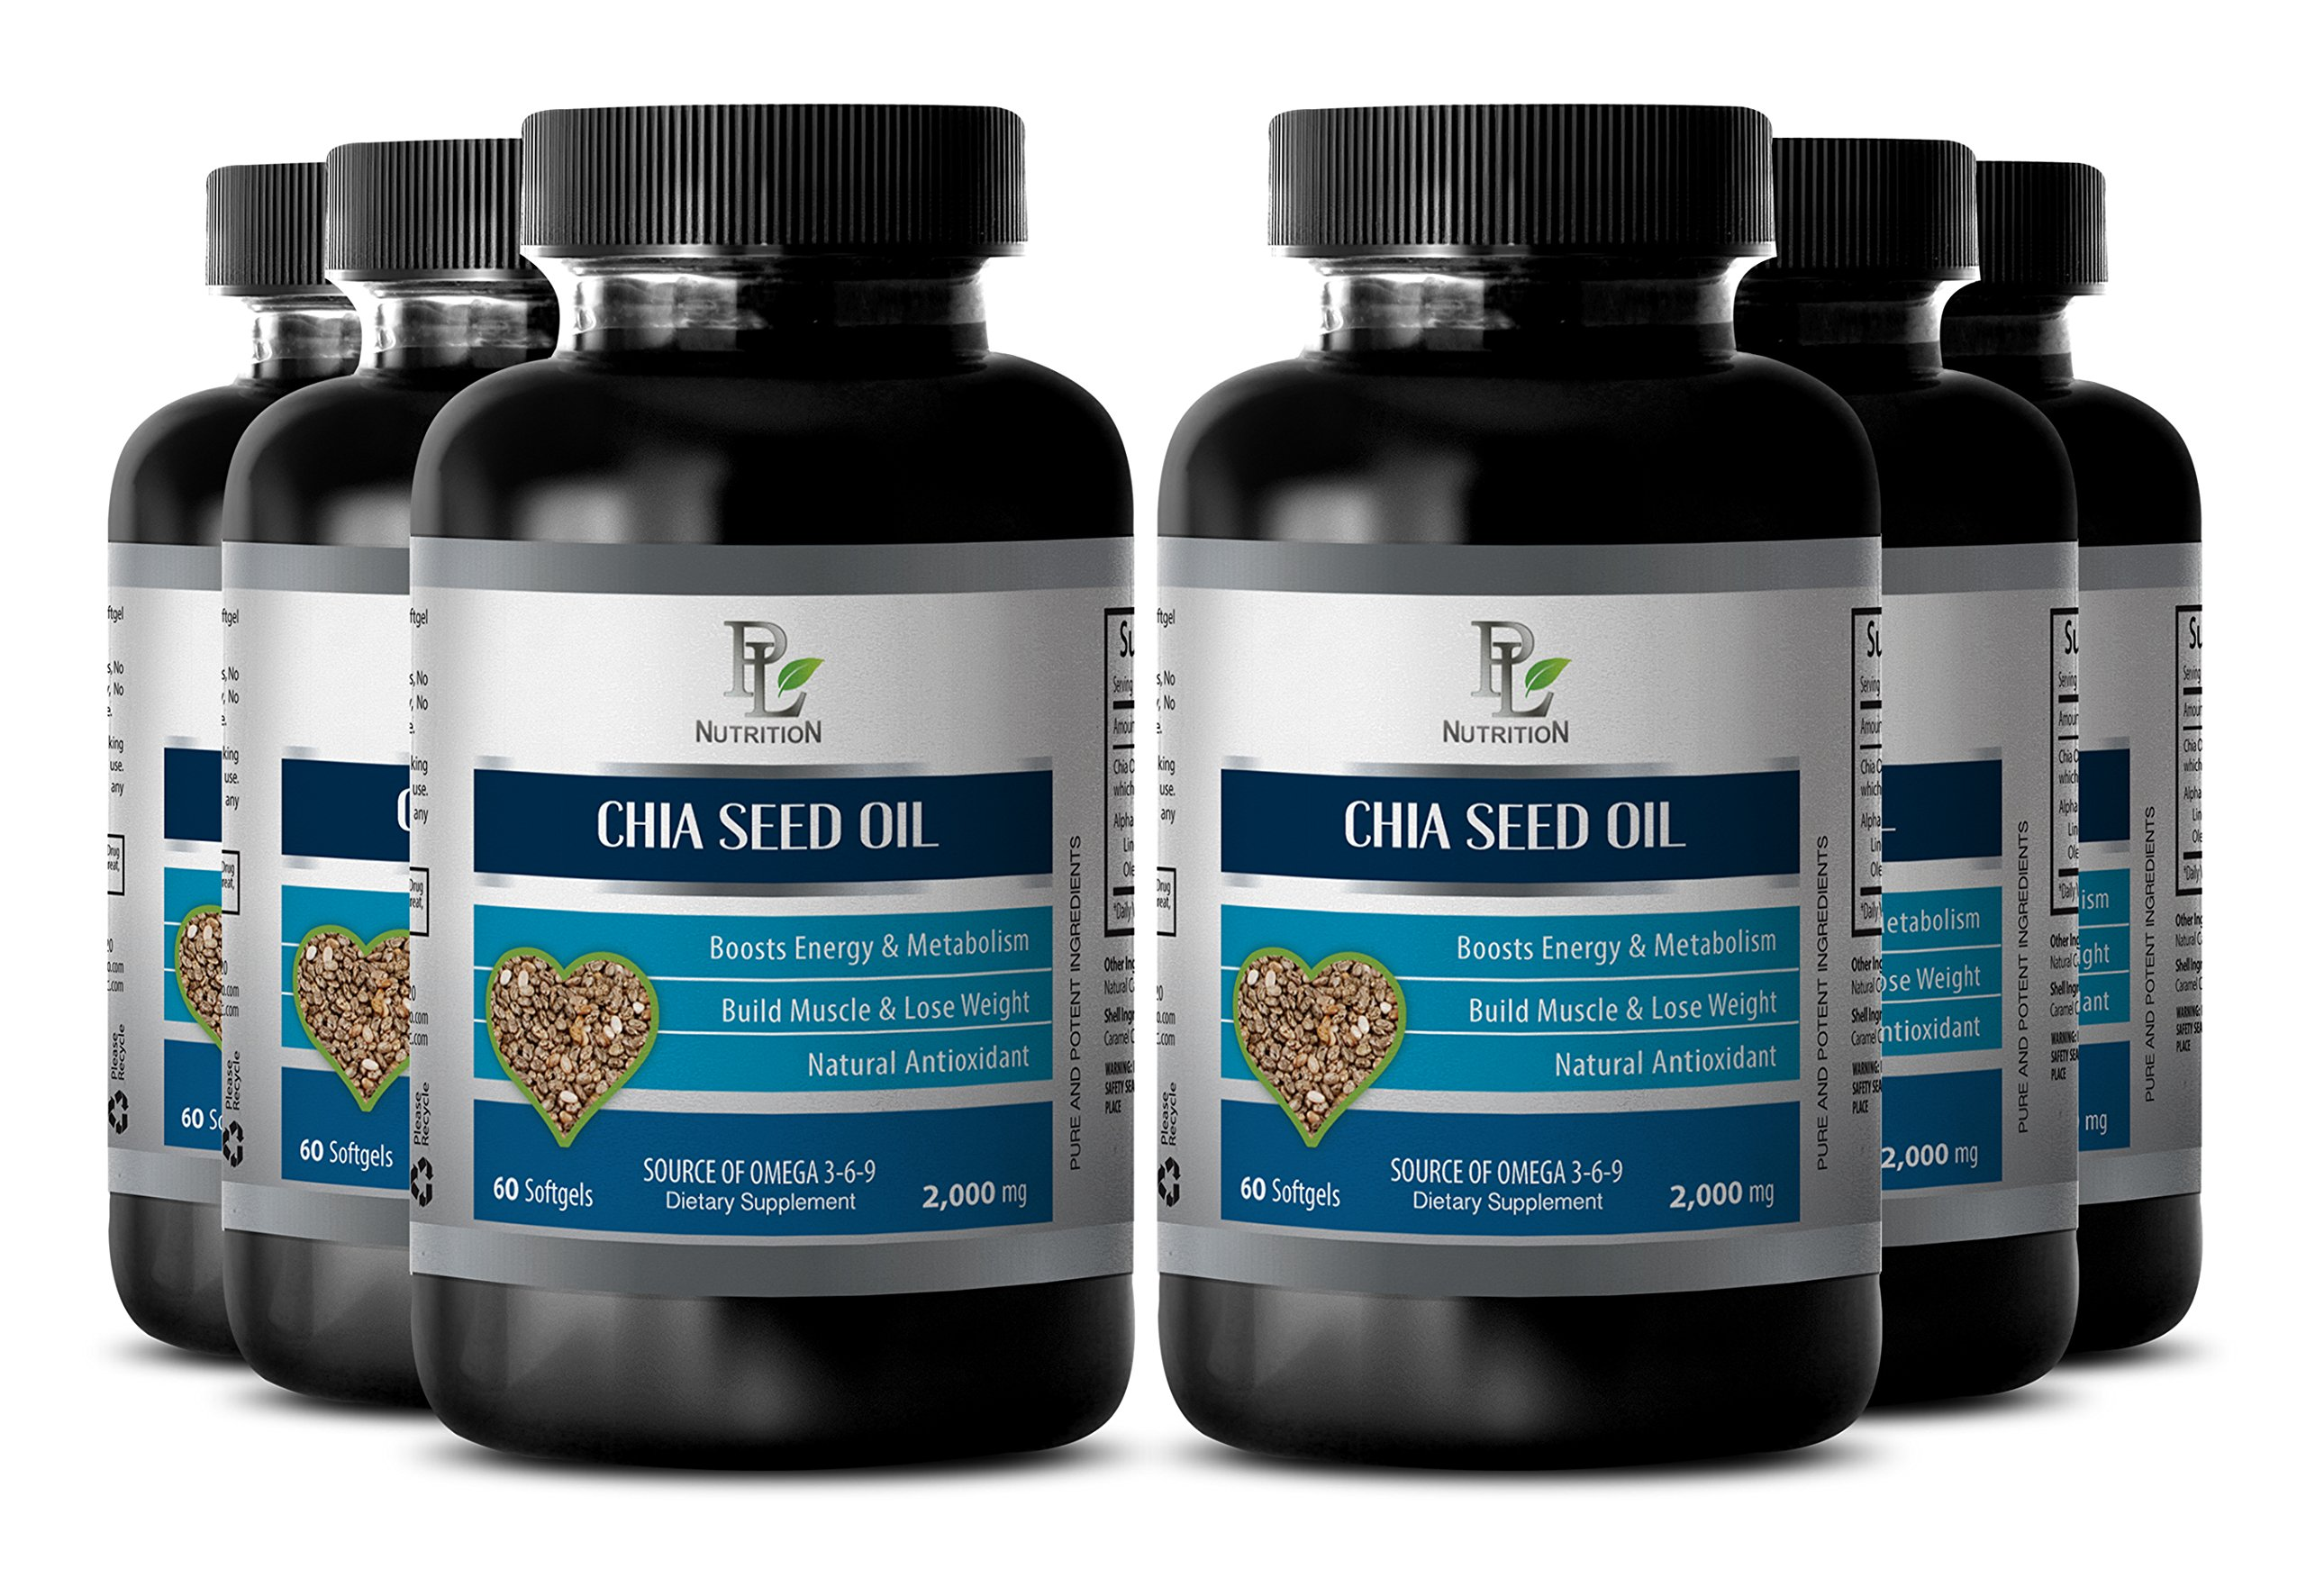 Memory herbal supplement - CHIA SEED OIL - Anti aging supplements - 6 Bottle 360 Softgels by PL NUTRITION